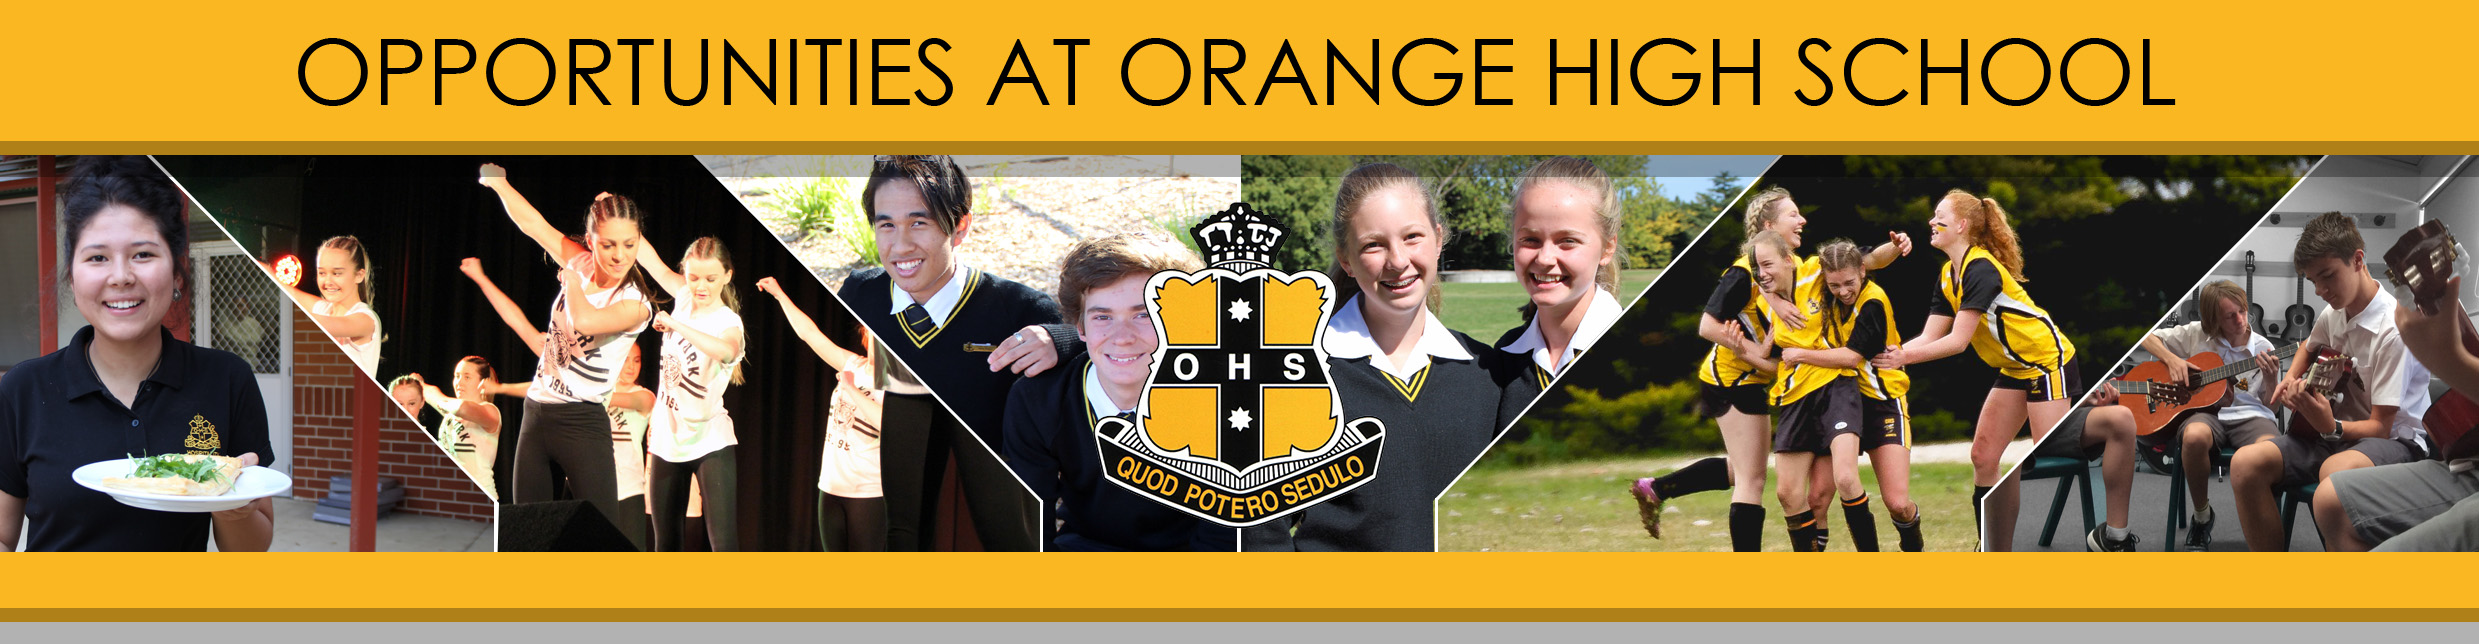 Opportunities at Orange High School Heading